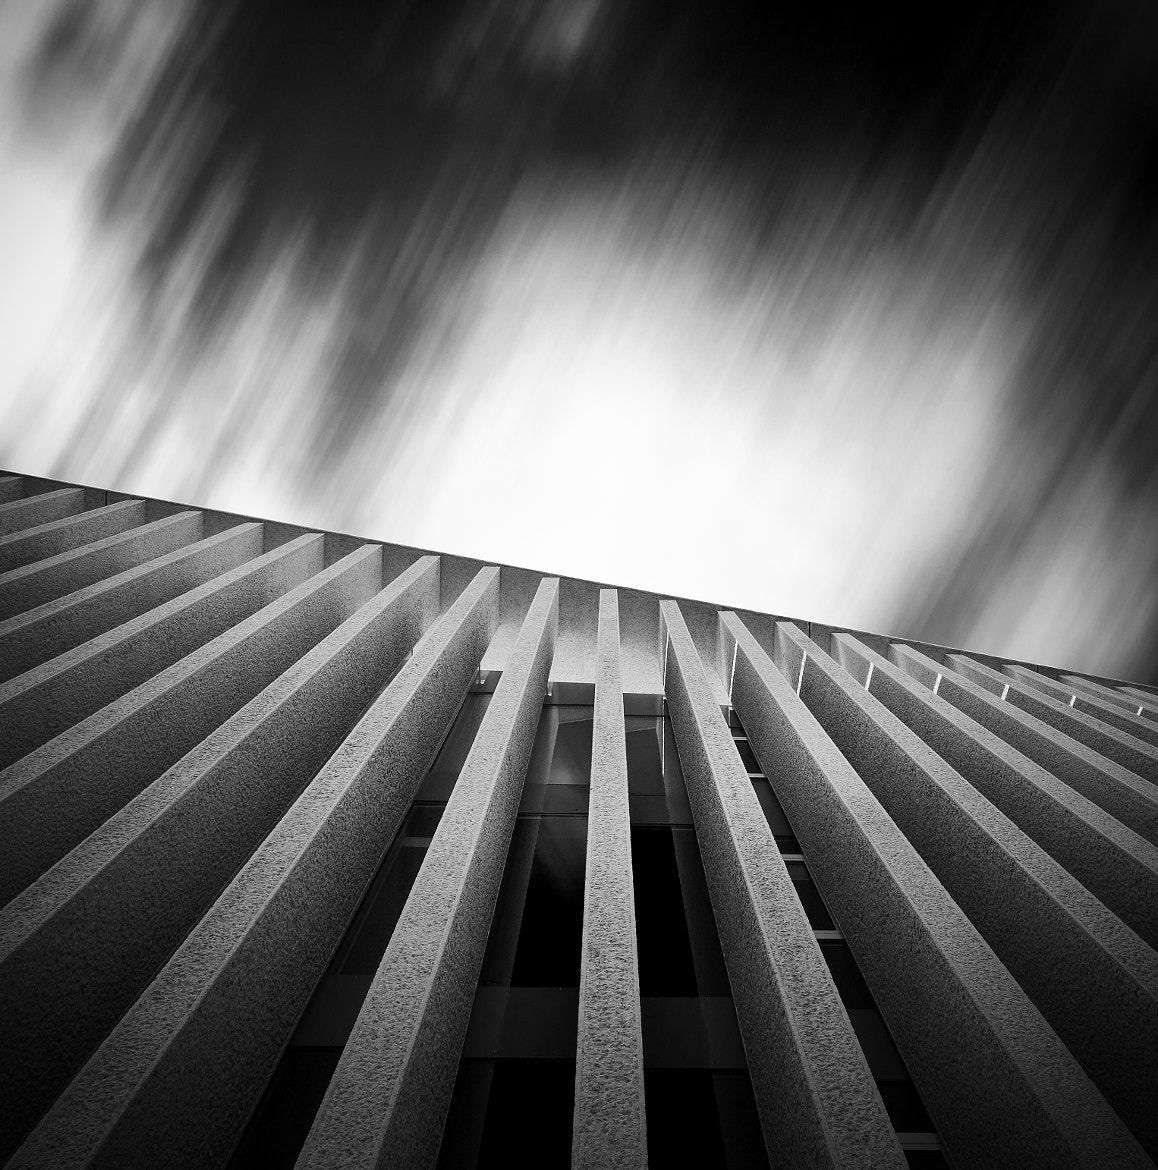 Photograph Lines by Philipp Richert on 500px